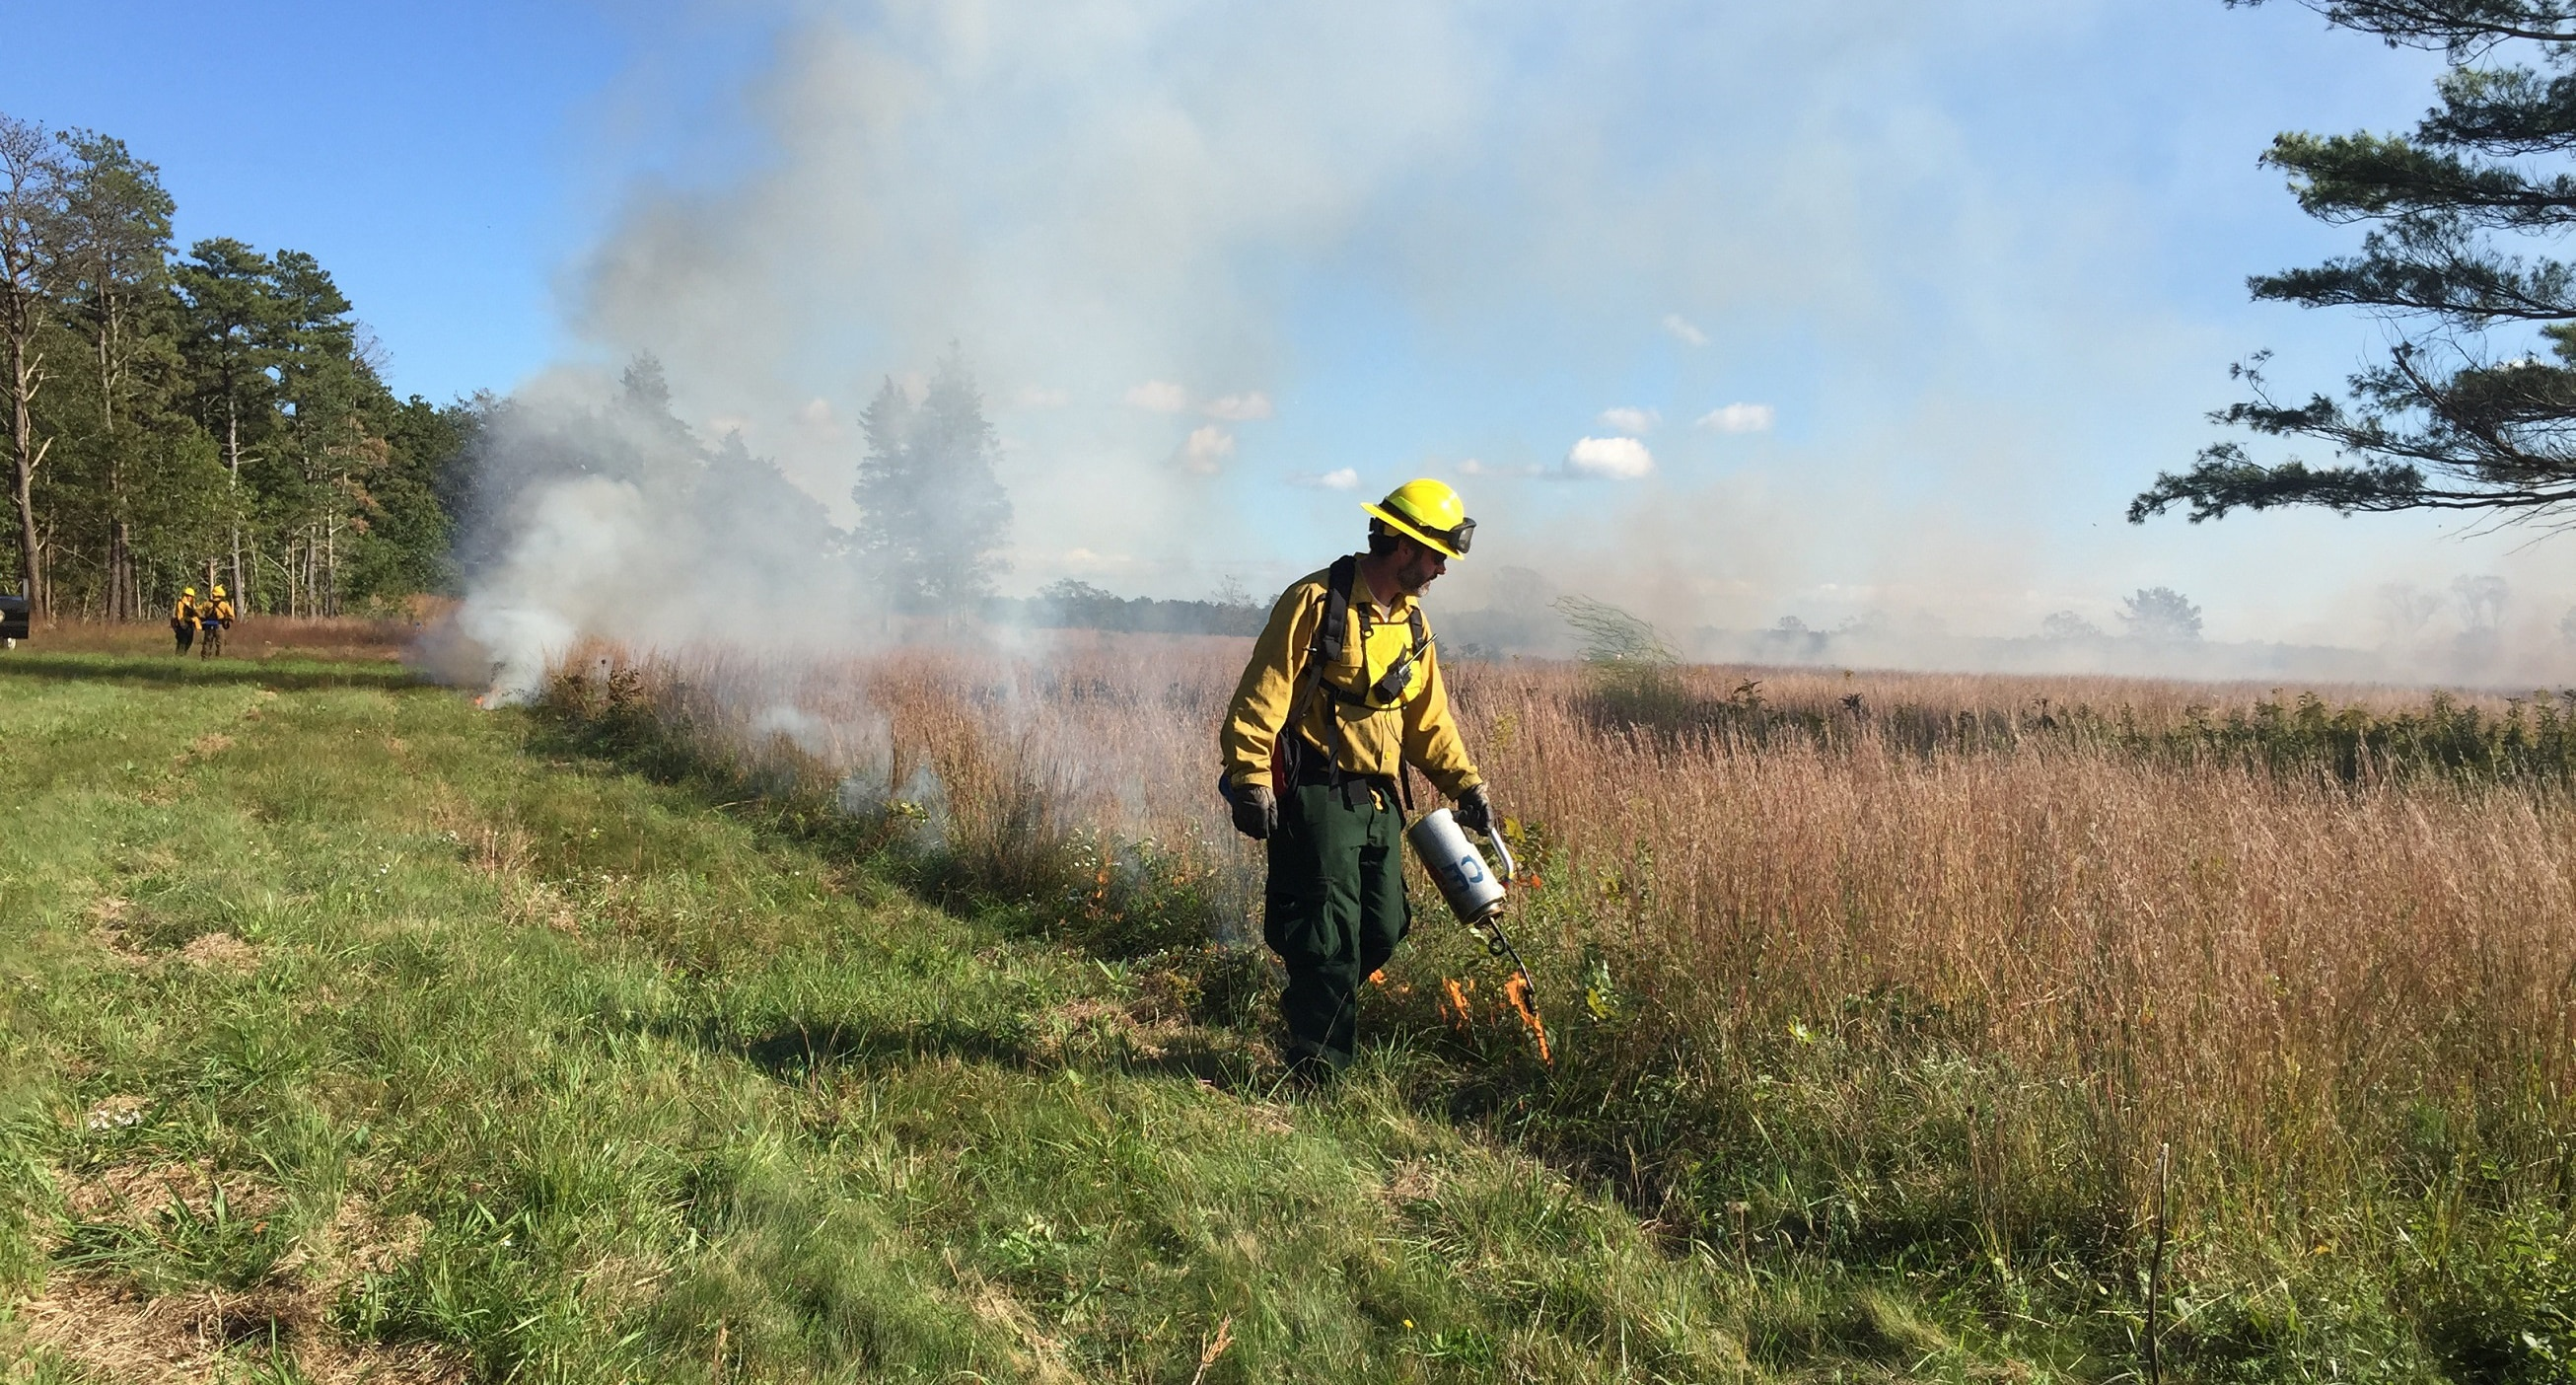 Igniting a prescribed fire.